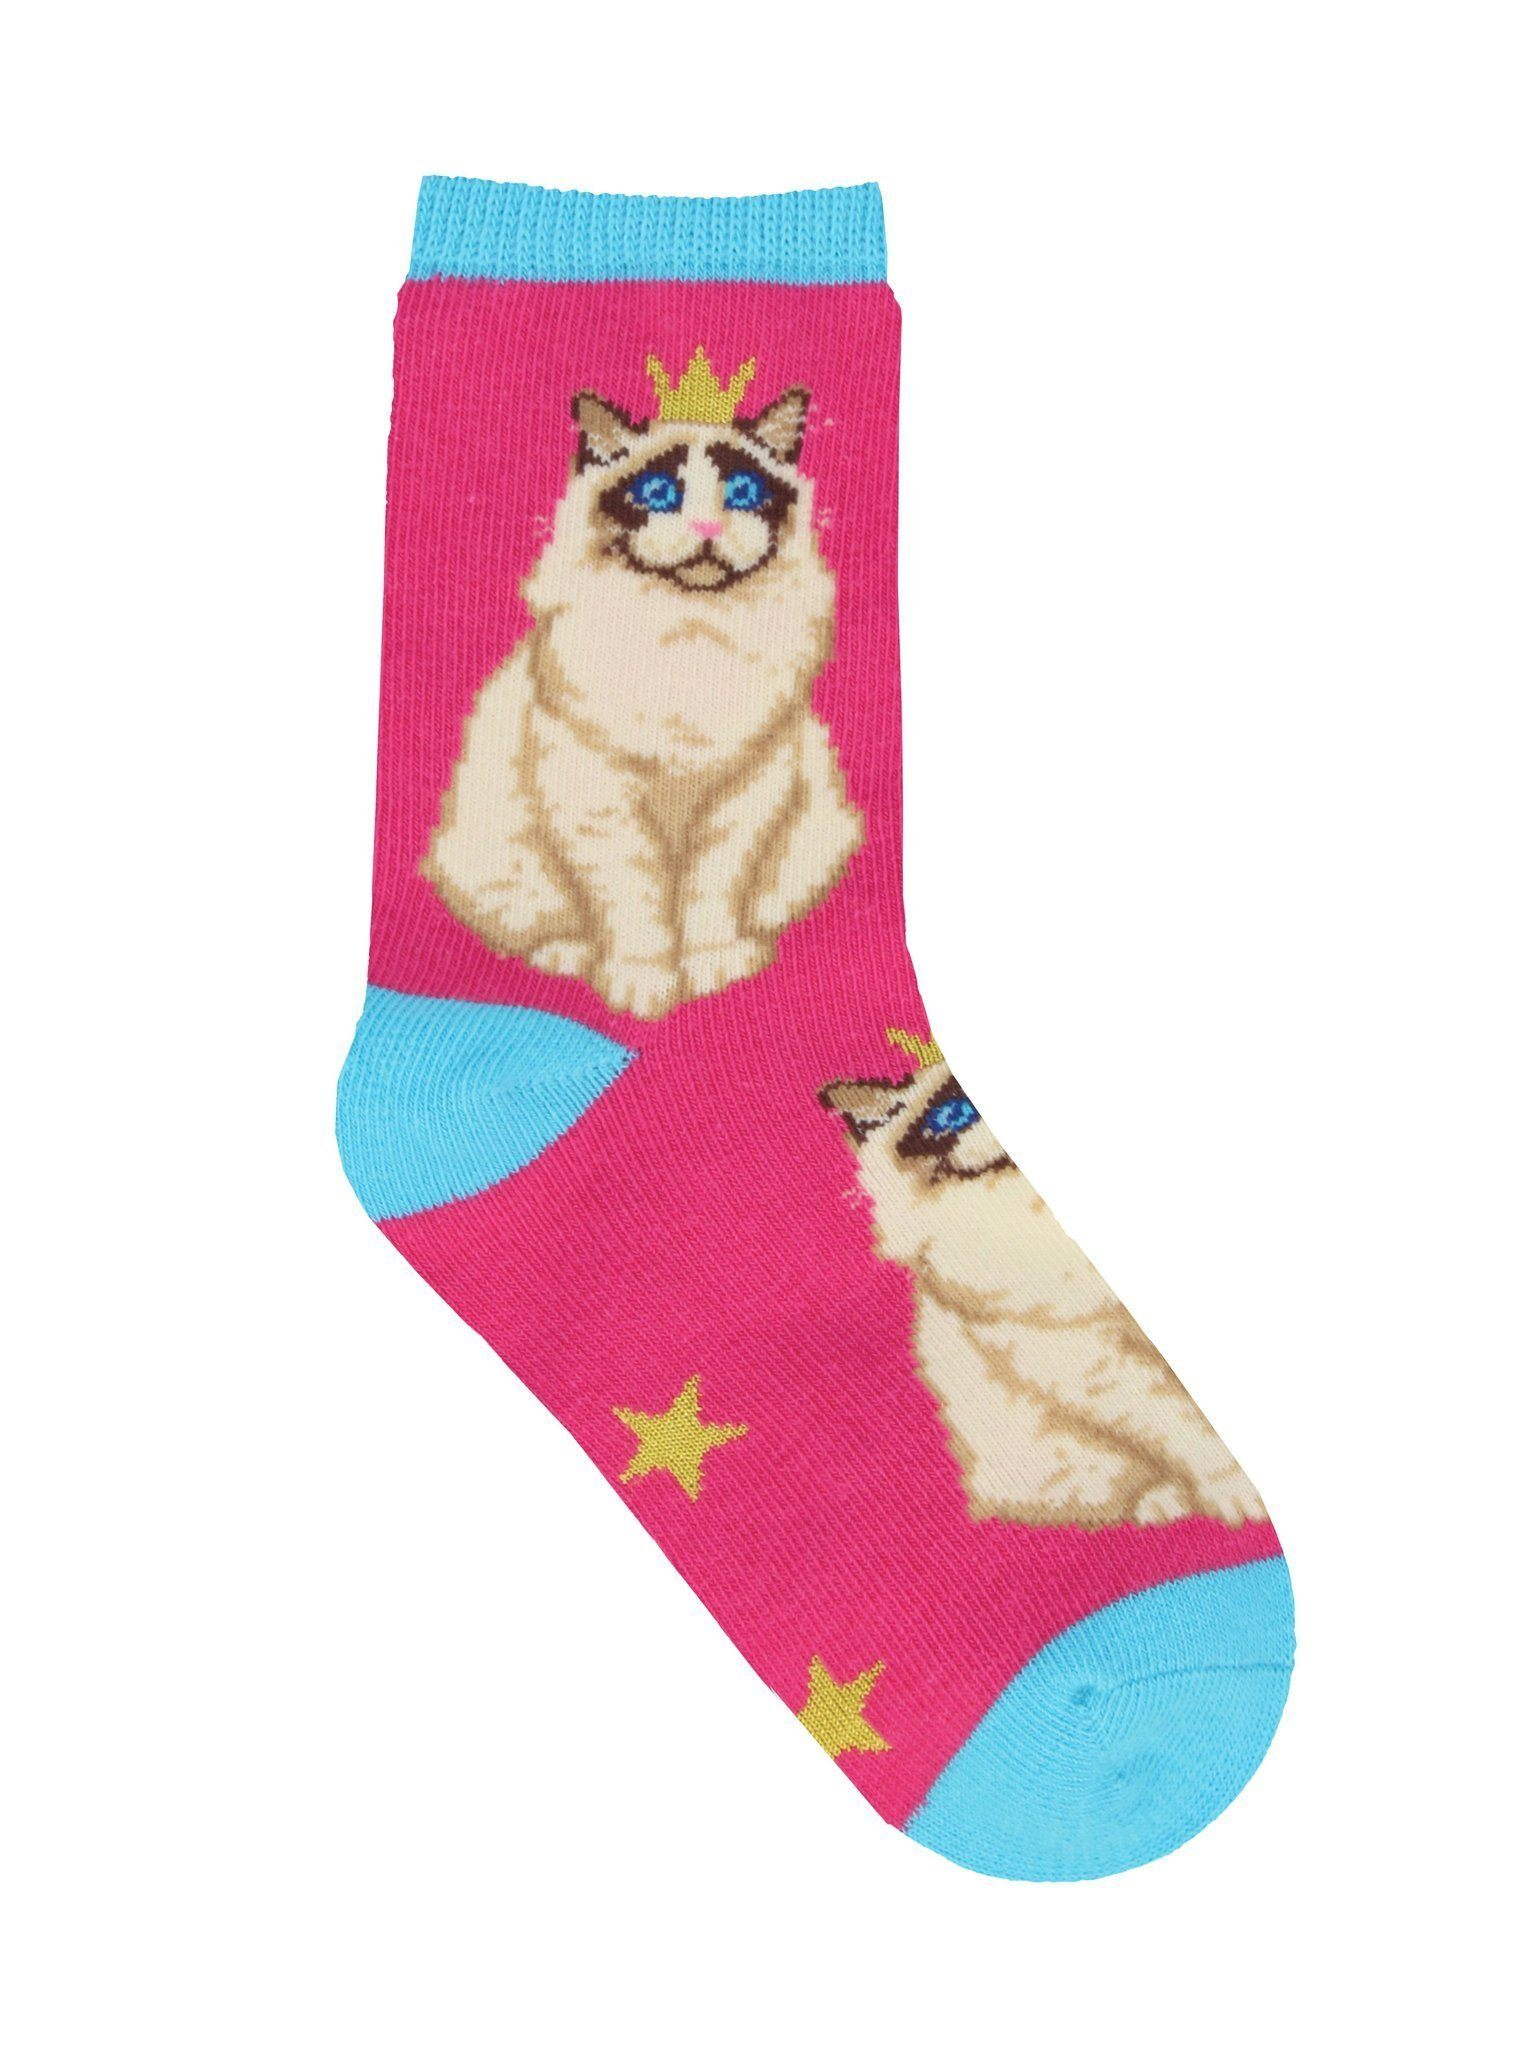 Socksmith - Practically Purrfect Crew Socks | Kids' - Knock Your Socks Off